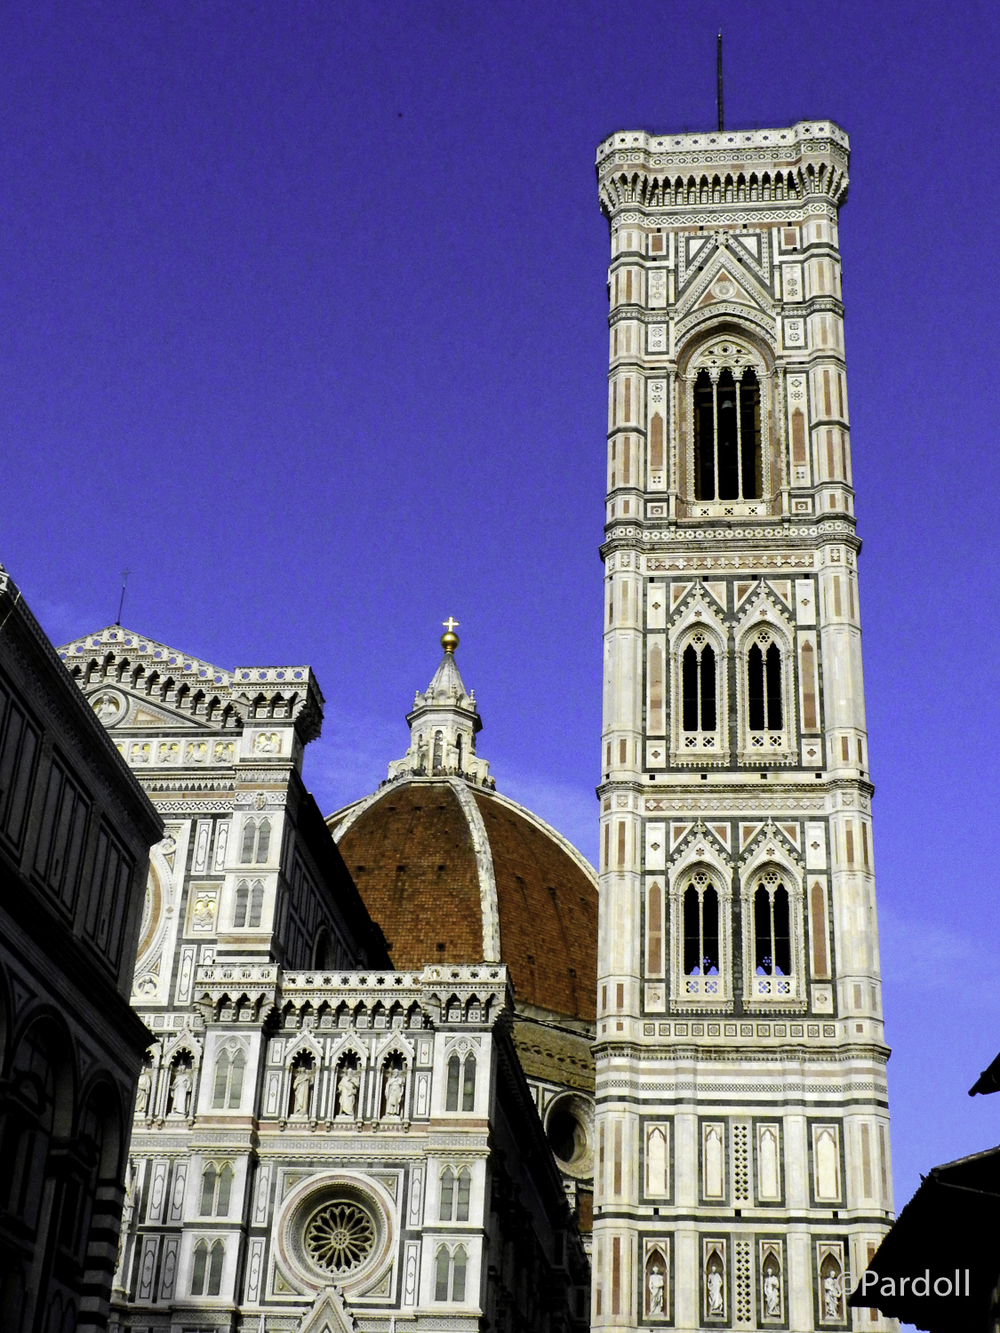 This is Santa Maria del Fiore, Europe's 4th largest church.